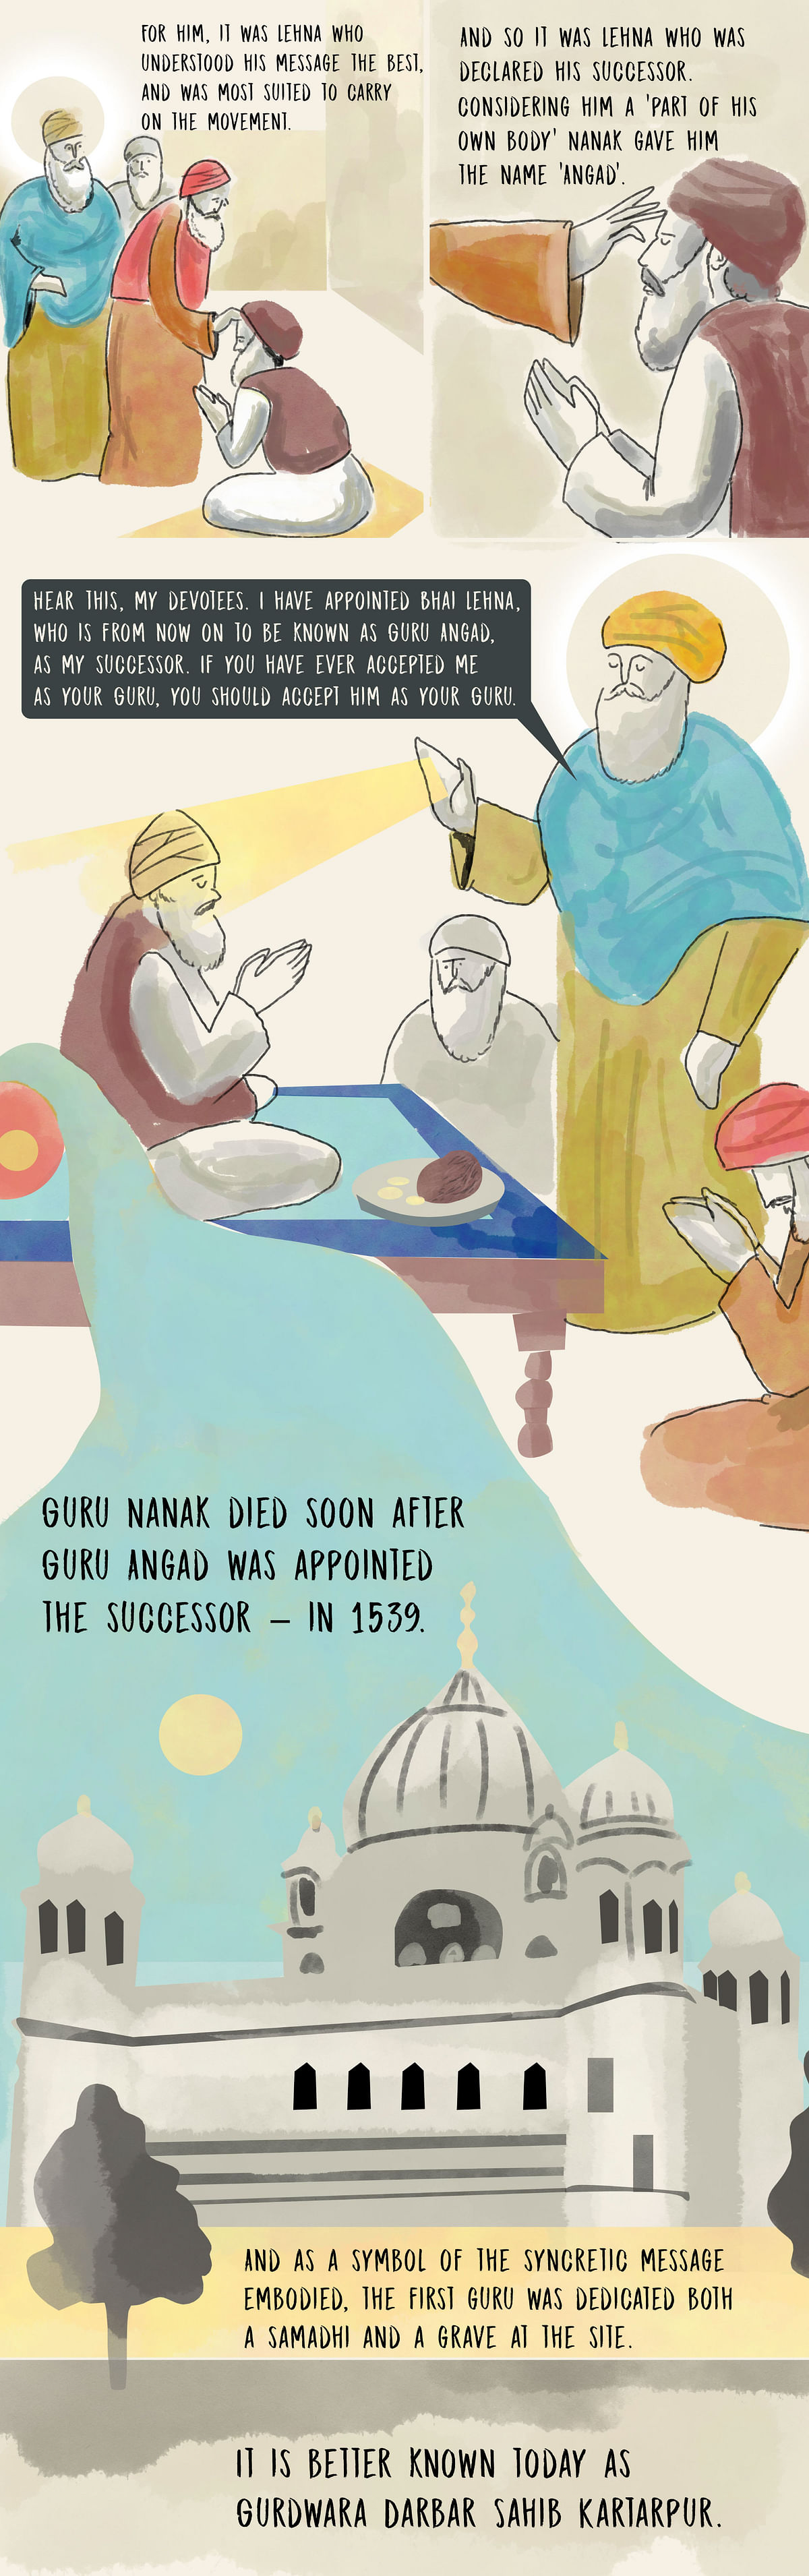 Graphic Novel: Kartarpur – Where Guru Nanak Lived His Last 17 Yrs